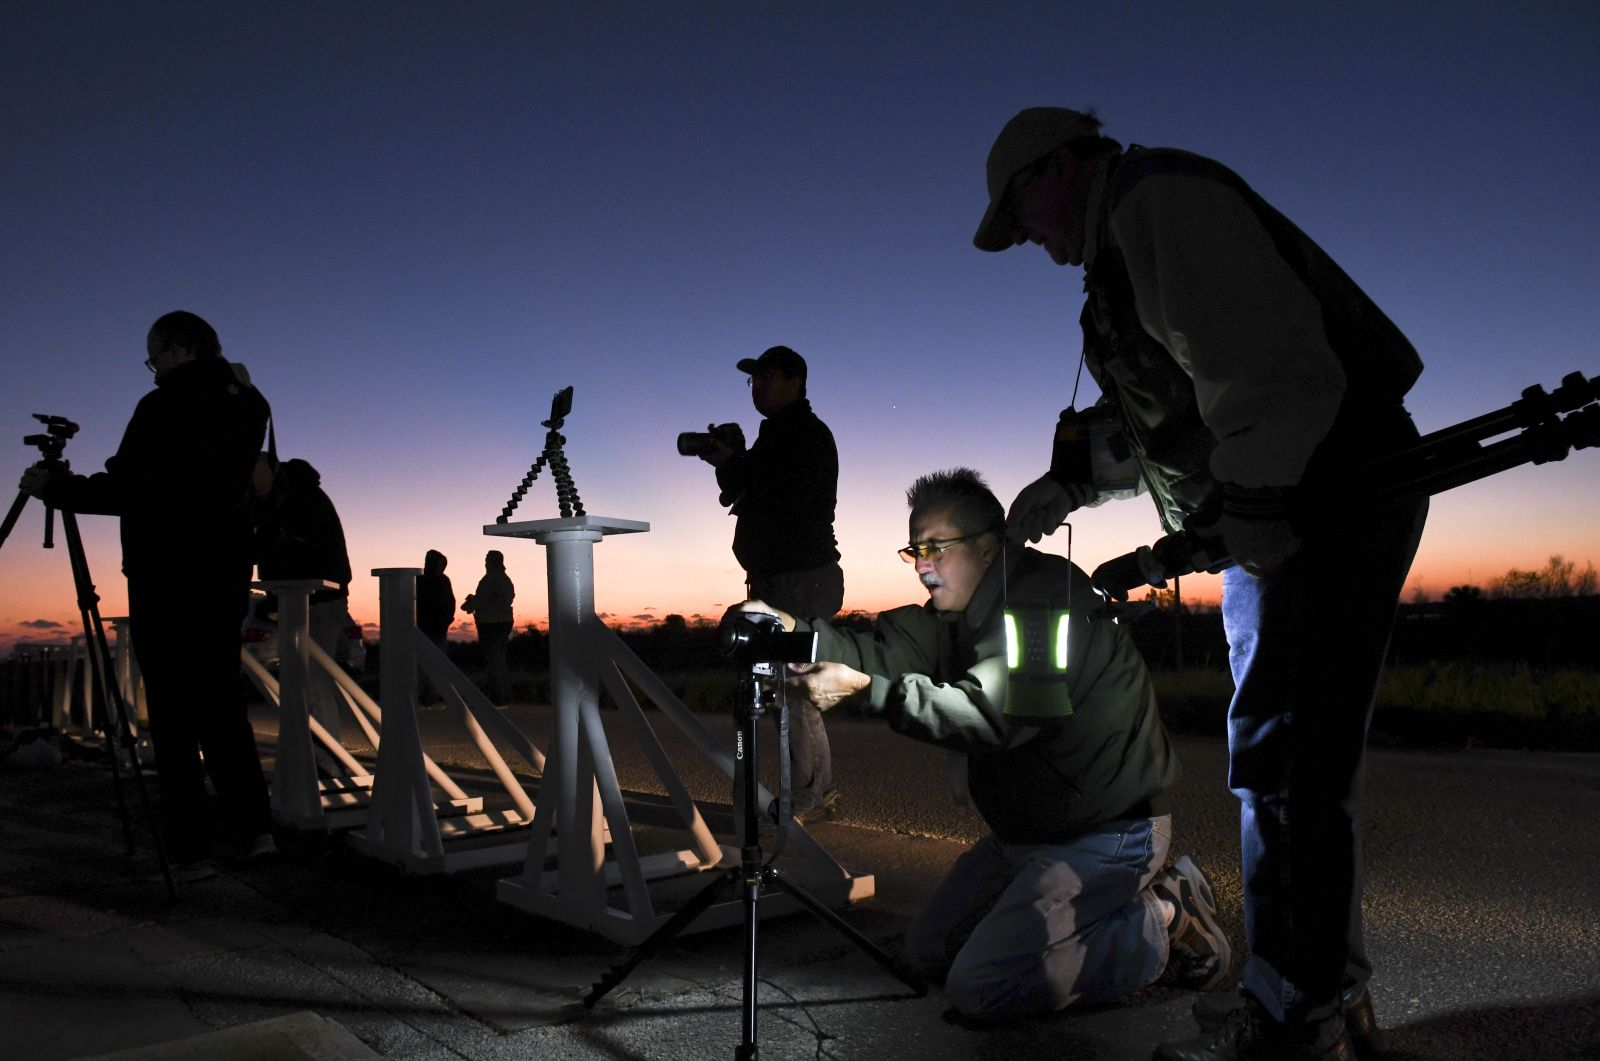 SpaceFlight Insider's Mike Howard sets a remote camera station in the early hours at Kennedy Space Center. Each station costs several hundred dollars and could be lost should an accident occur. Photo Credit: Craig Bailey/FLORIDA TODAY